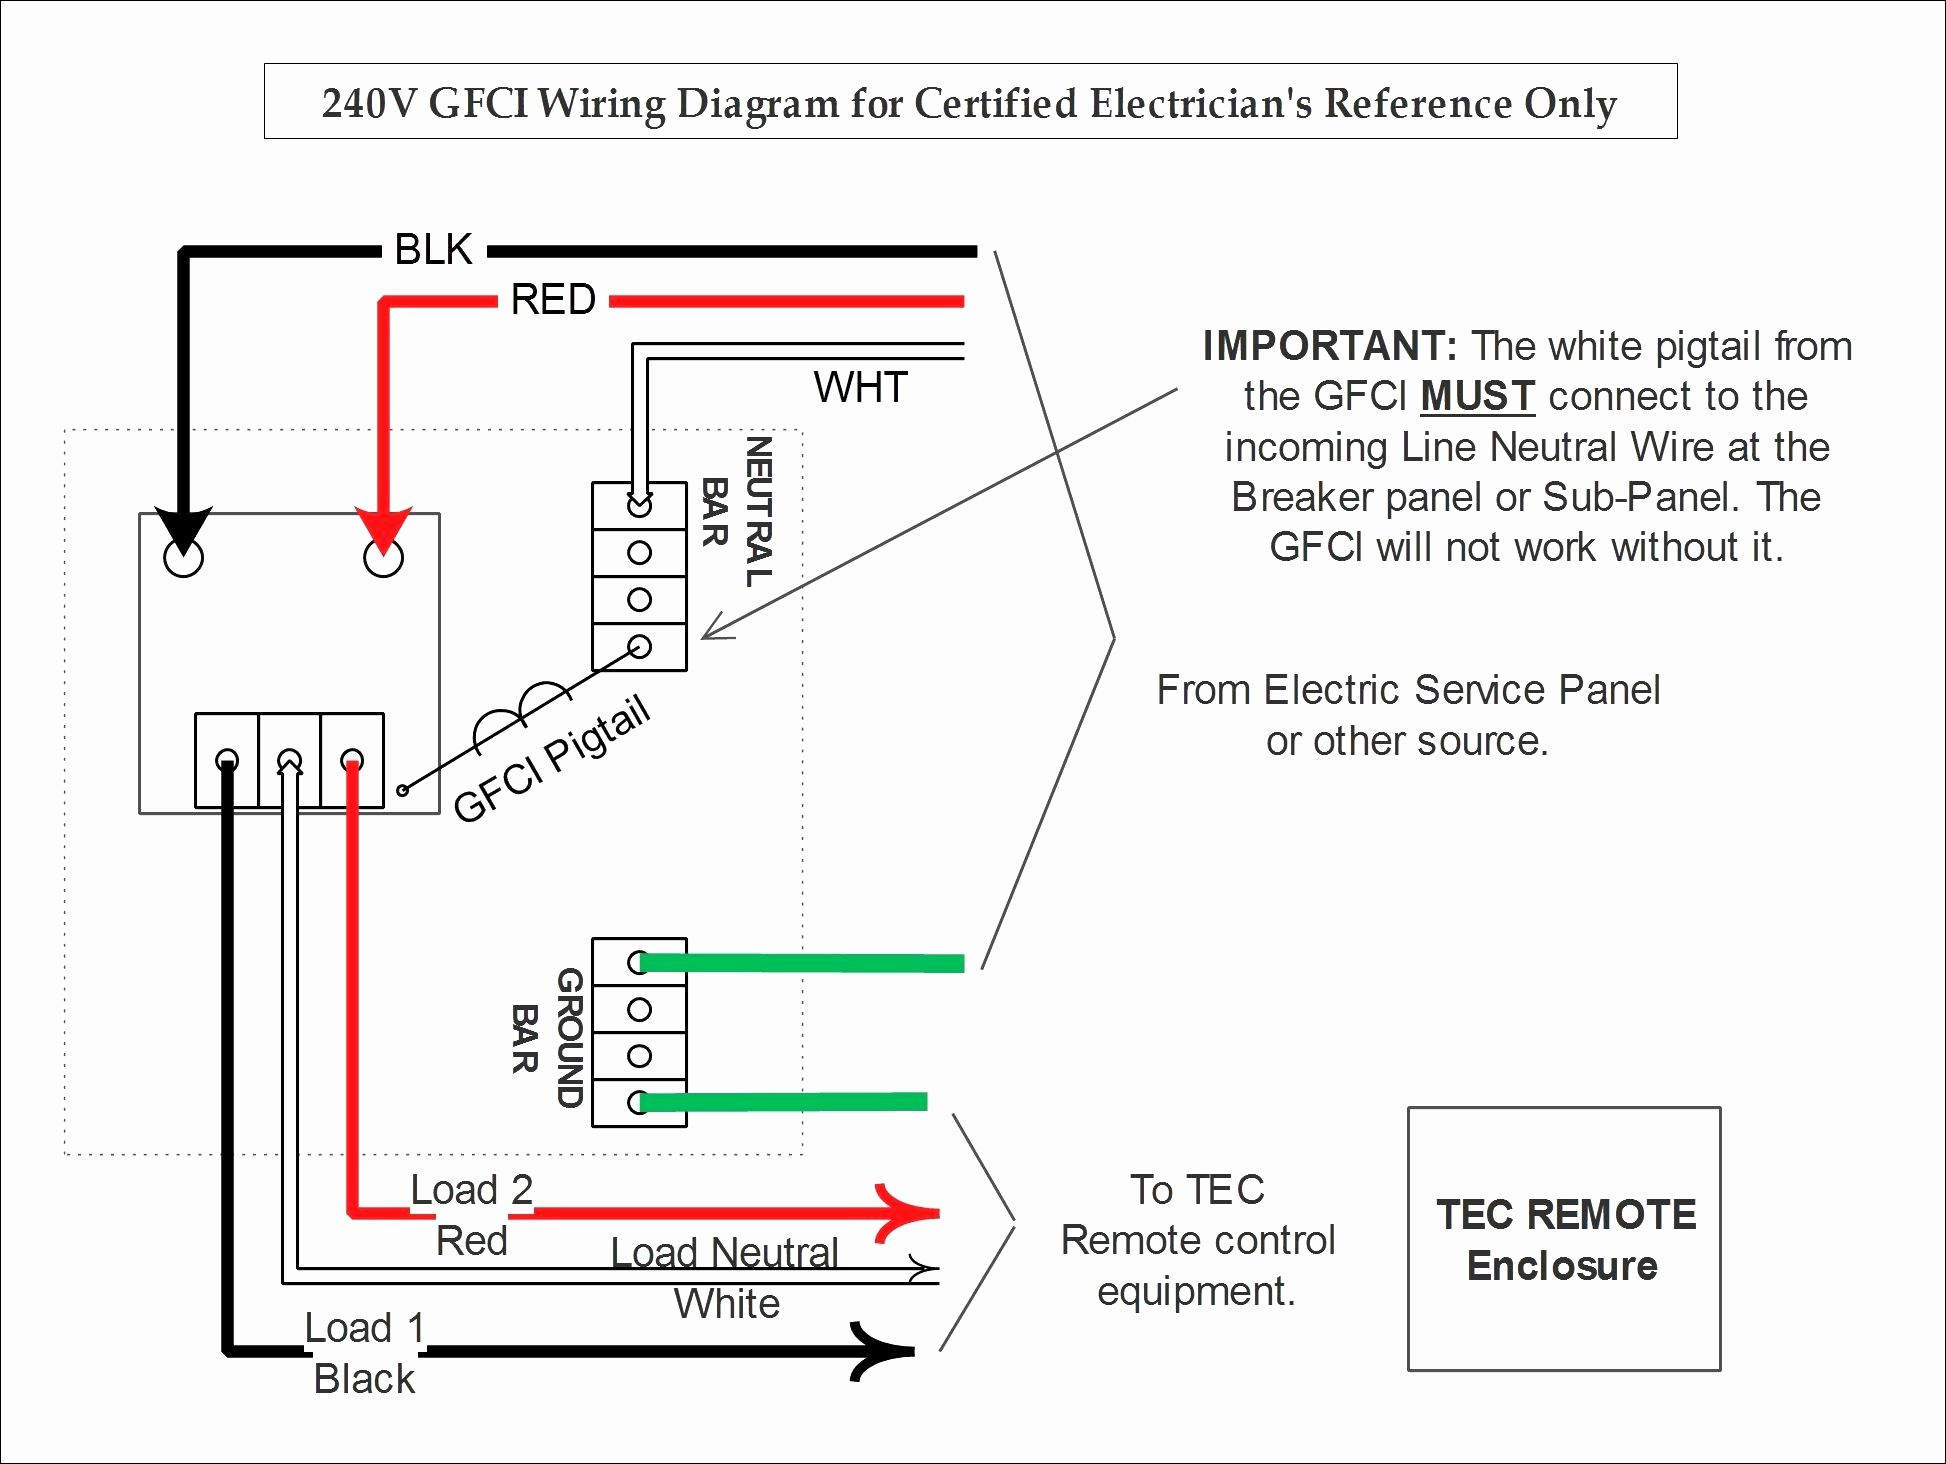 Dayton Unit Heater Wiring Diagram Inspirational Dayton Electric - Dayton Electric Motors Wiring Diagram Download